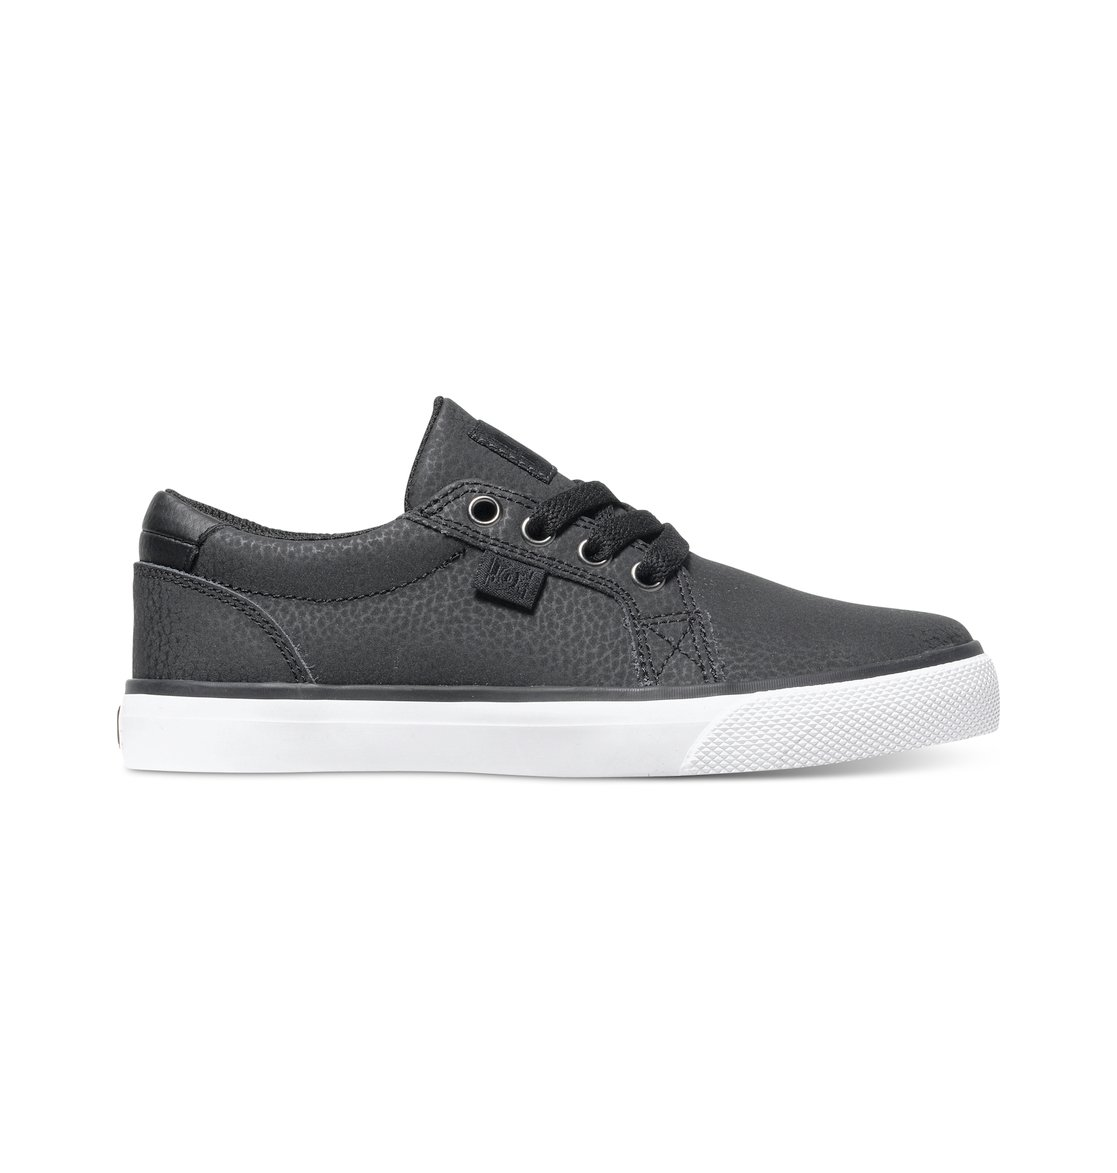 Council - Dcshoes������ ������� ���� Council �� DC Shoes. <br>��������������: ������� ��������������� ���, ���� �� ���� ��� ������, ������������ ������� � ������� �� ����, ����������������� ����������� ��� ����� ������� �������� �����, ������������� ���������� �������, ��������� ������� ���������� ������� DC Pill Pattern. <br>������: ����: ���� / ���������: �������� / �������: ������.<br>